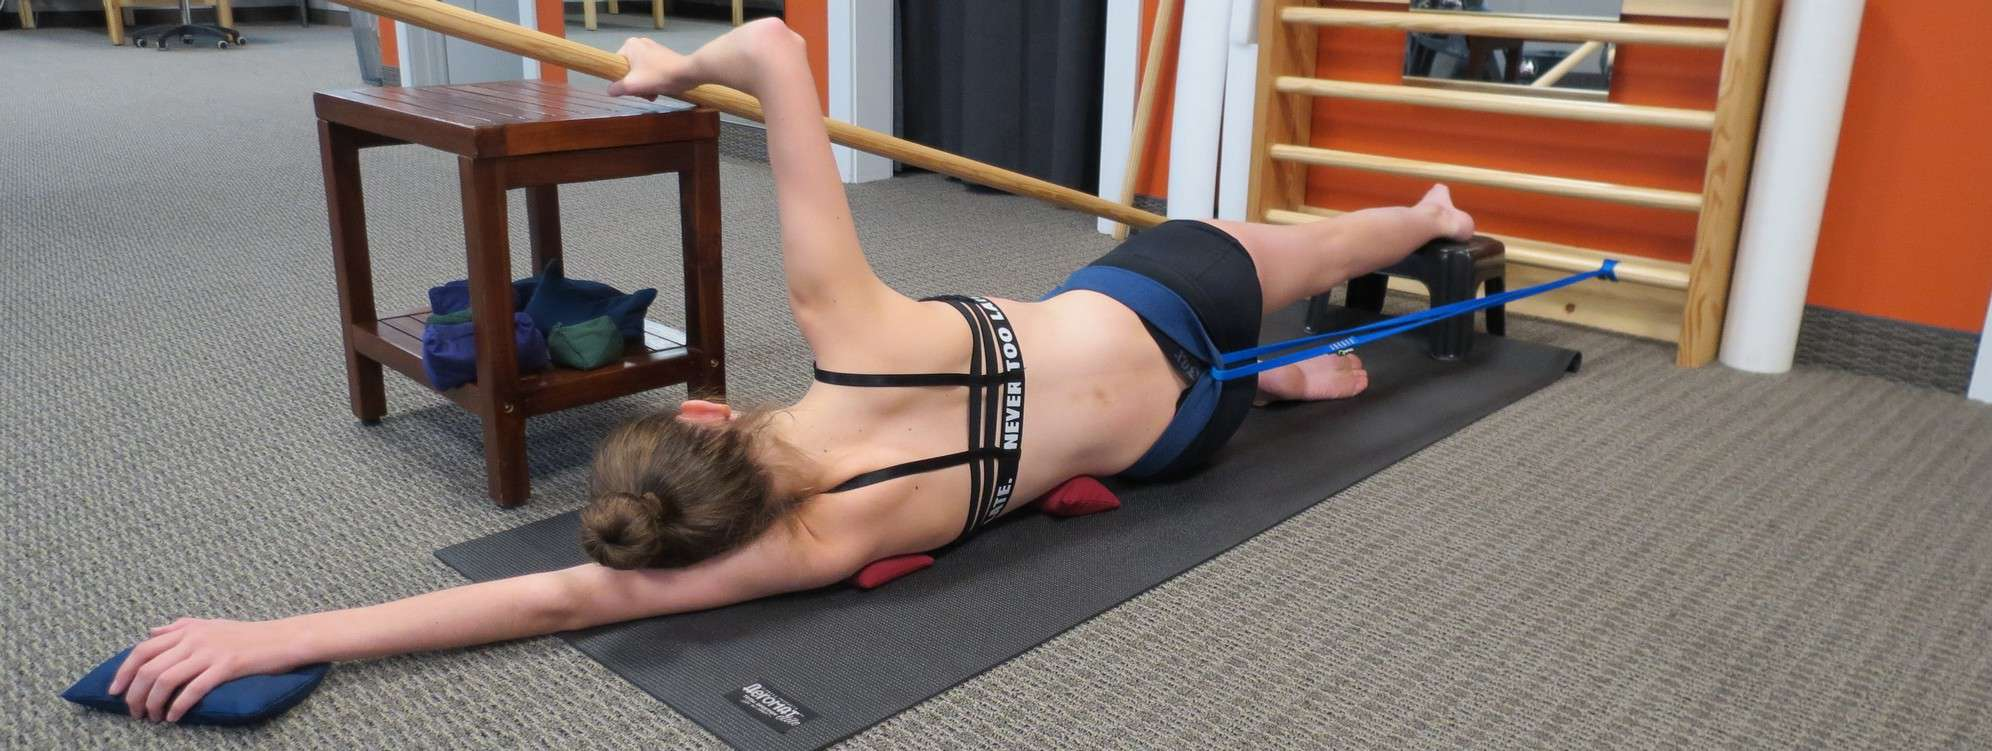 Schroth Method sidelying corrections lying on a yoga mat while holding a pole